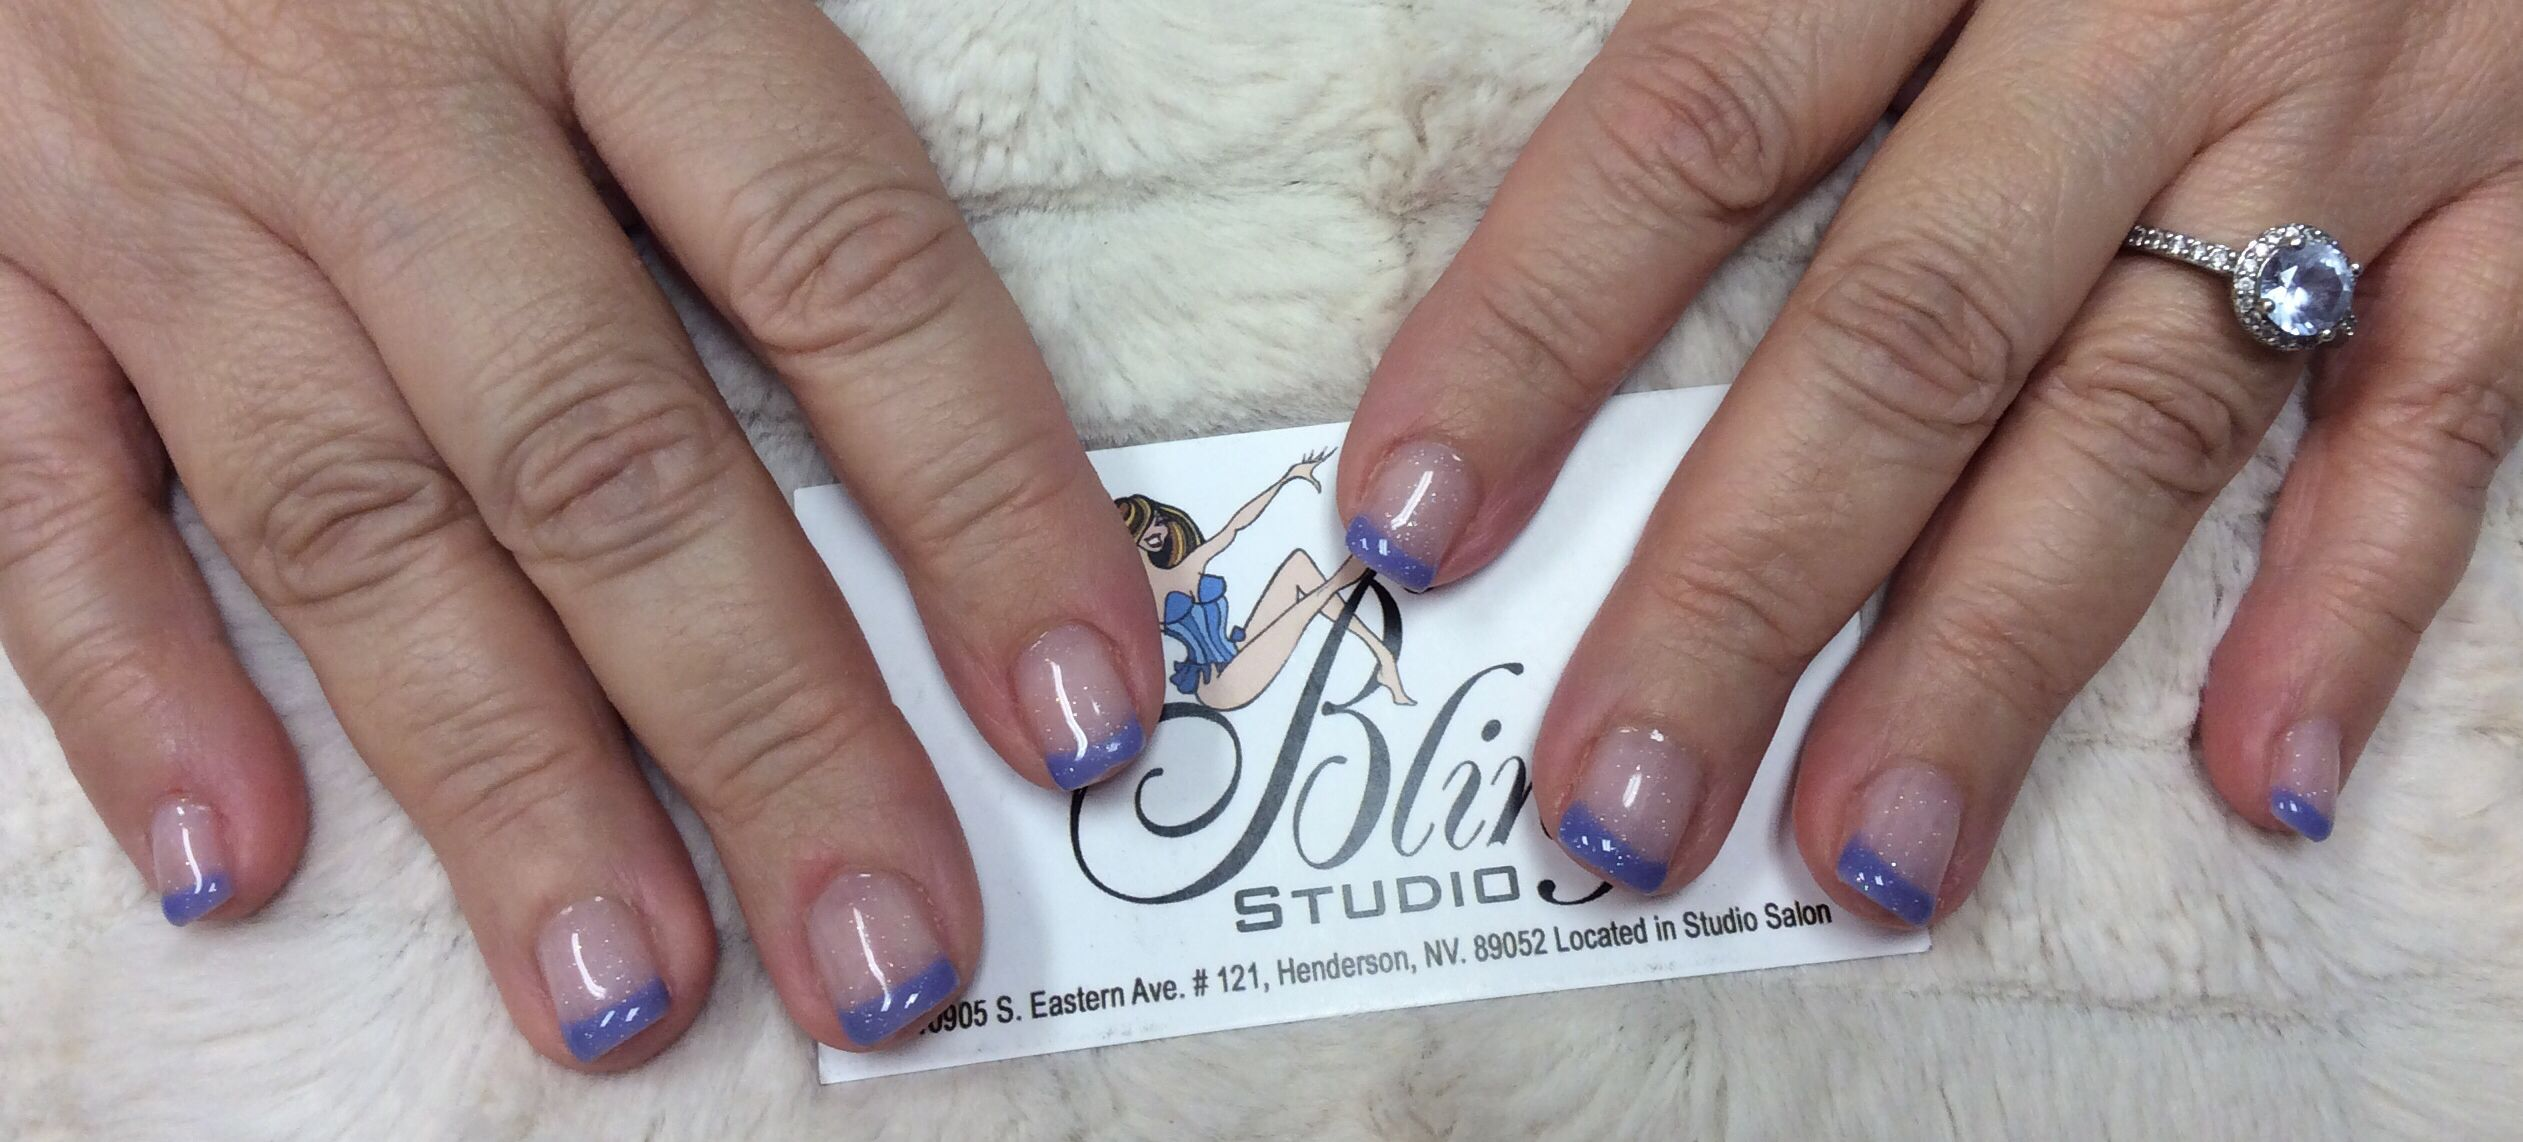 Pin By Deb On Nails By Deb Nails Manicure French Manicure